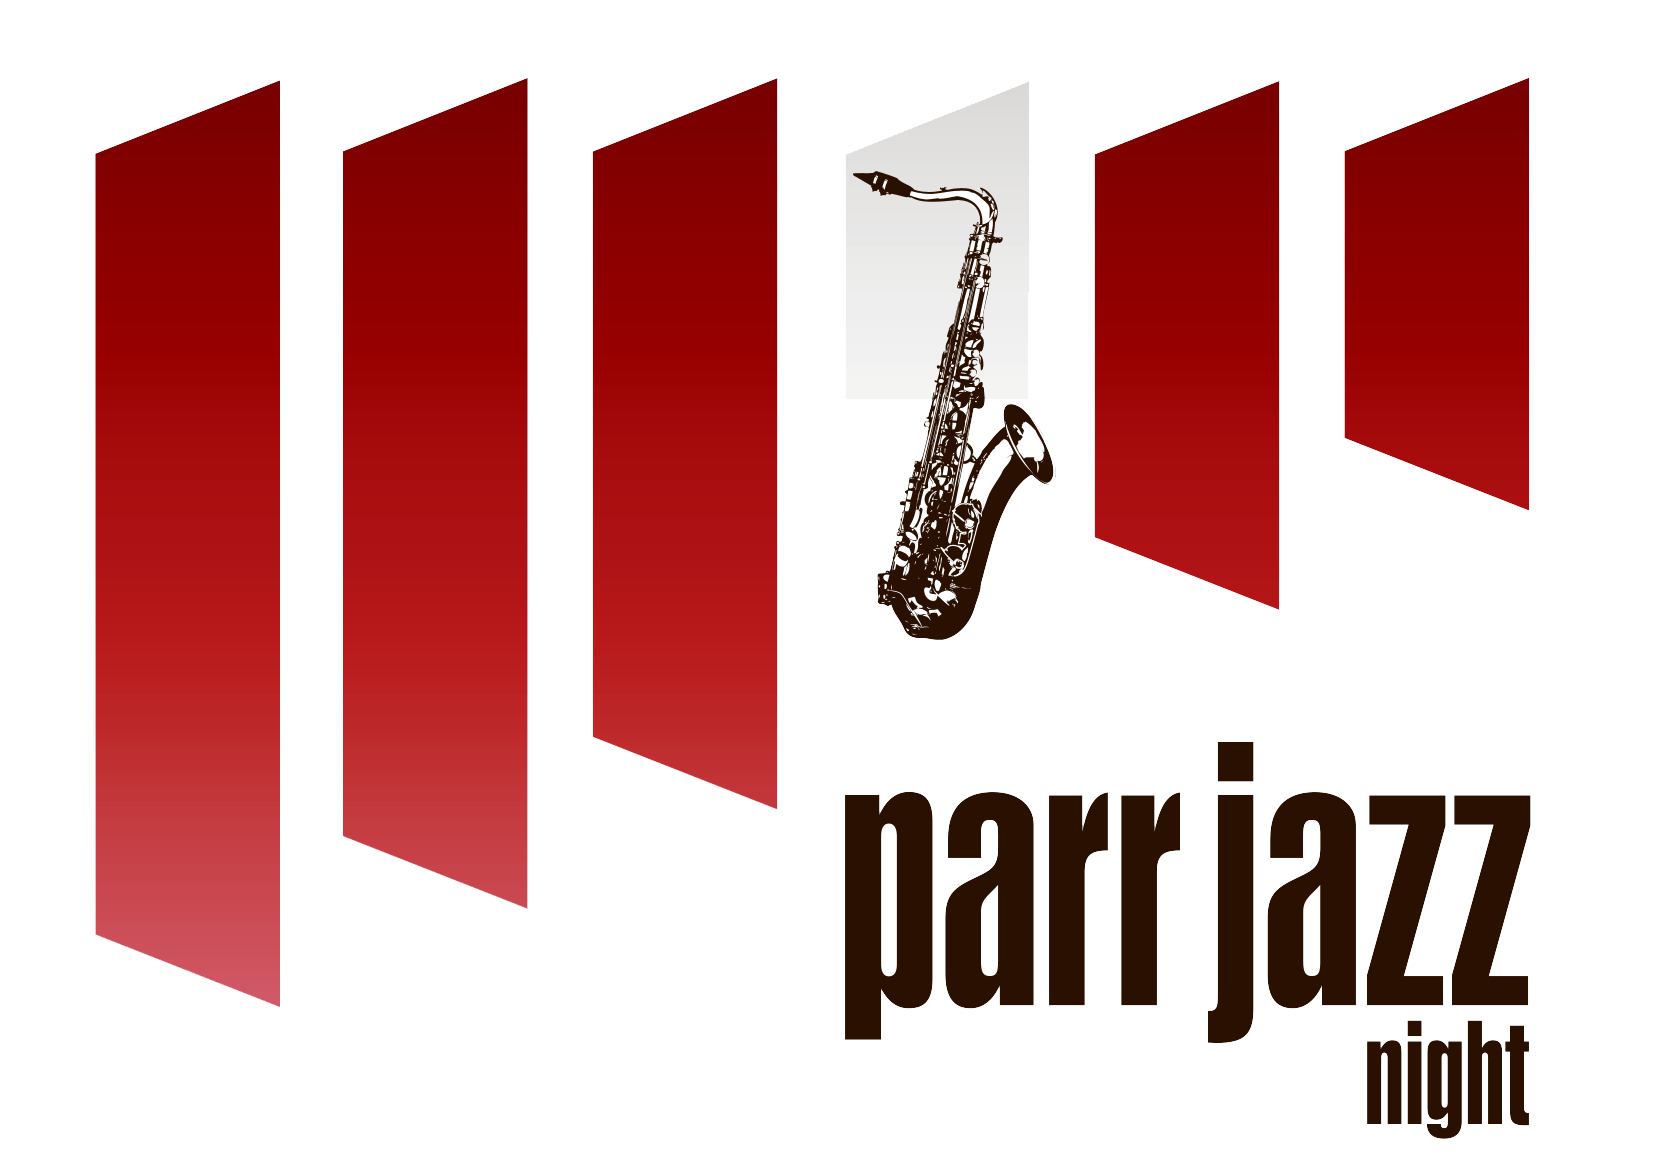 PARRJAZZ -news and reviews